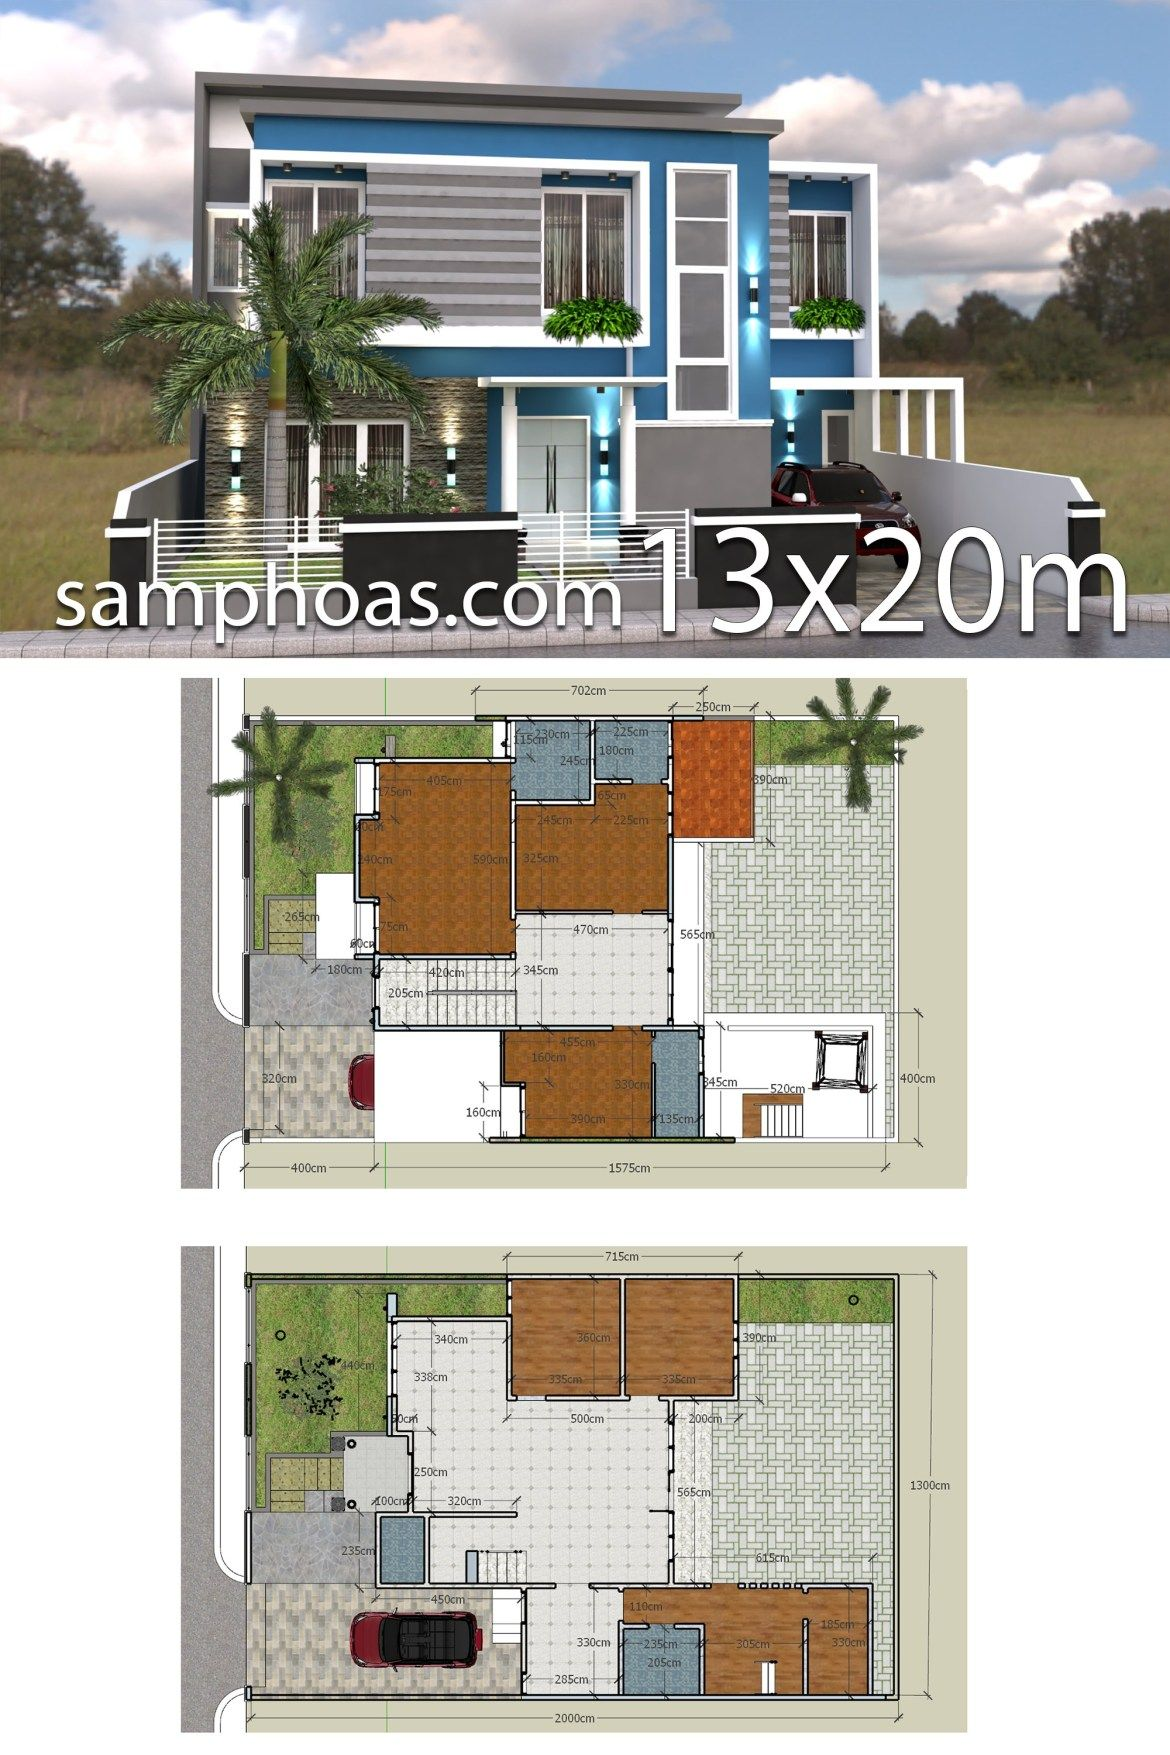 3d Home Design Plan 13x20m With Full Plan 6 Bedrooms Samphoas Plansearch House Design 3d Home Design Home Design Plan